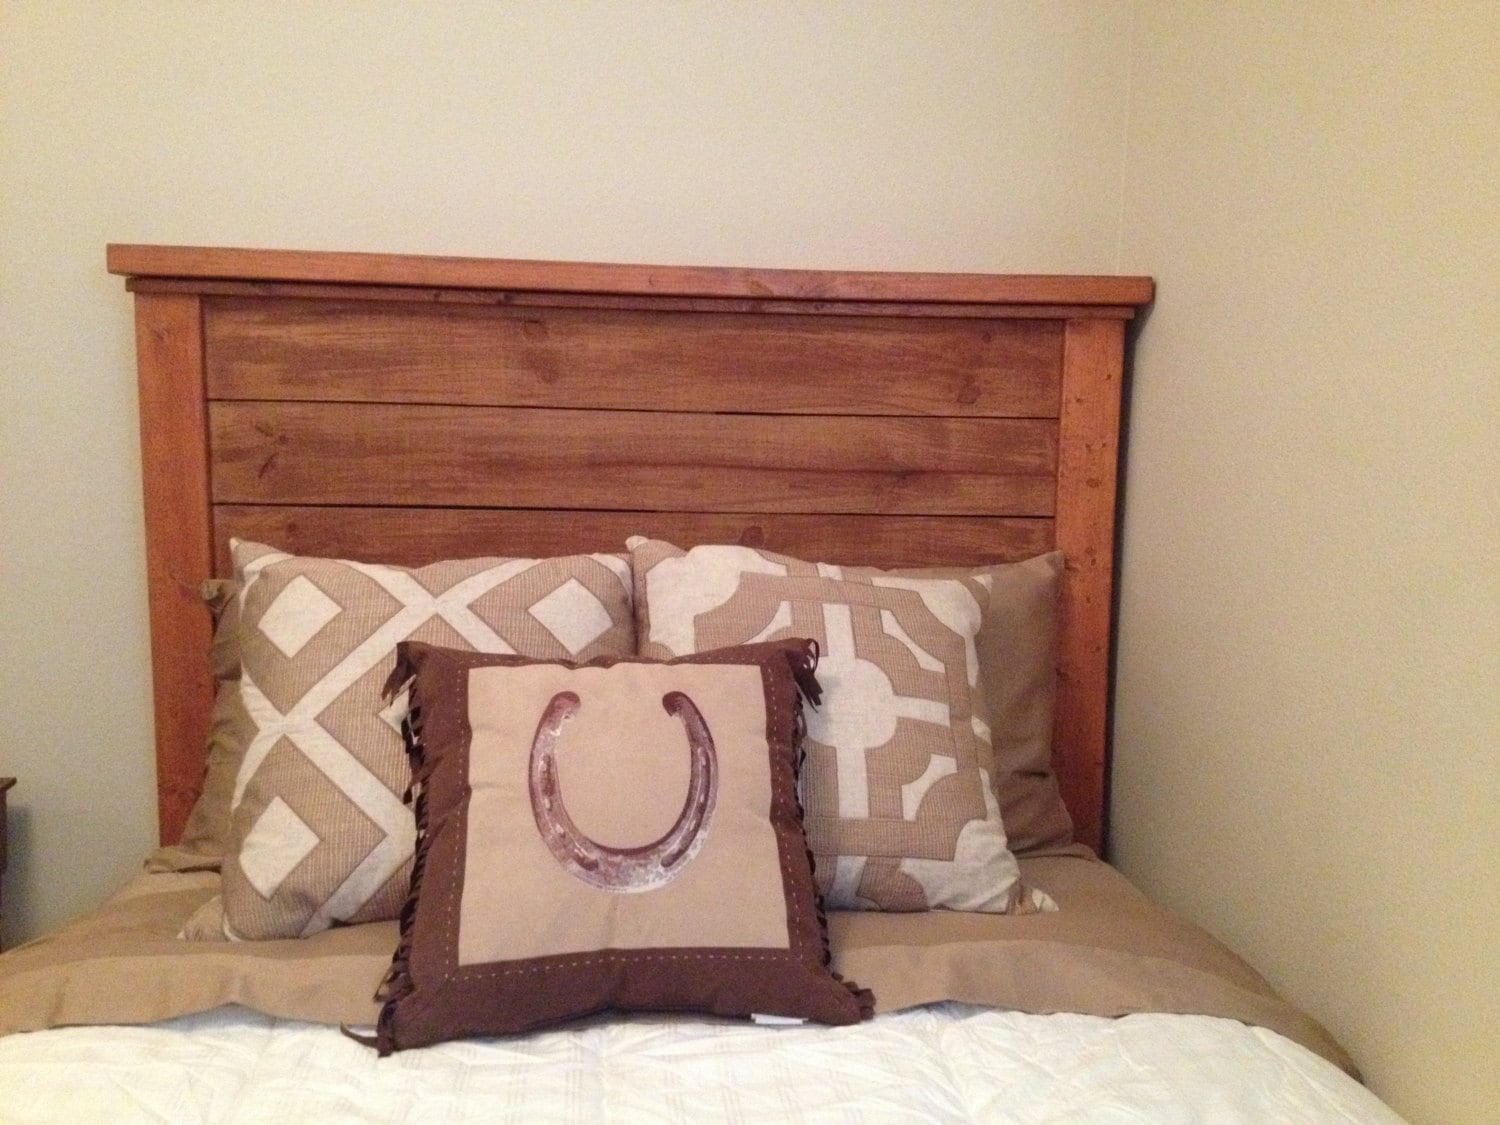 made sawmarkfurniture custom a reclaimed pine to heart headboards buy from headboard order by